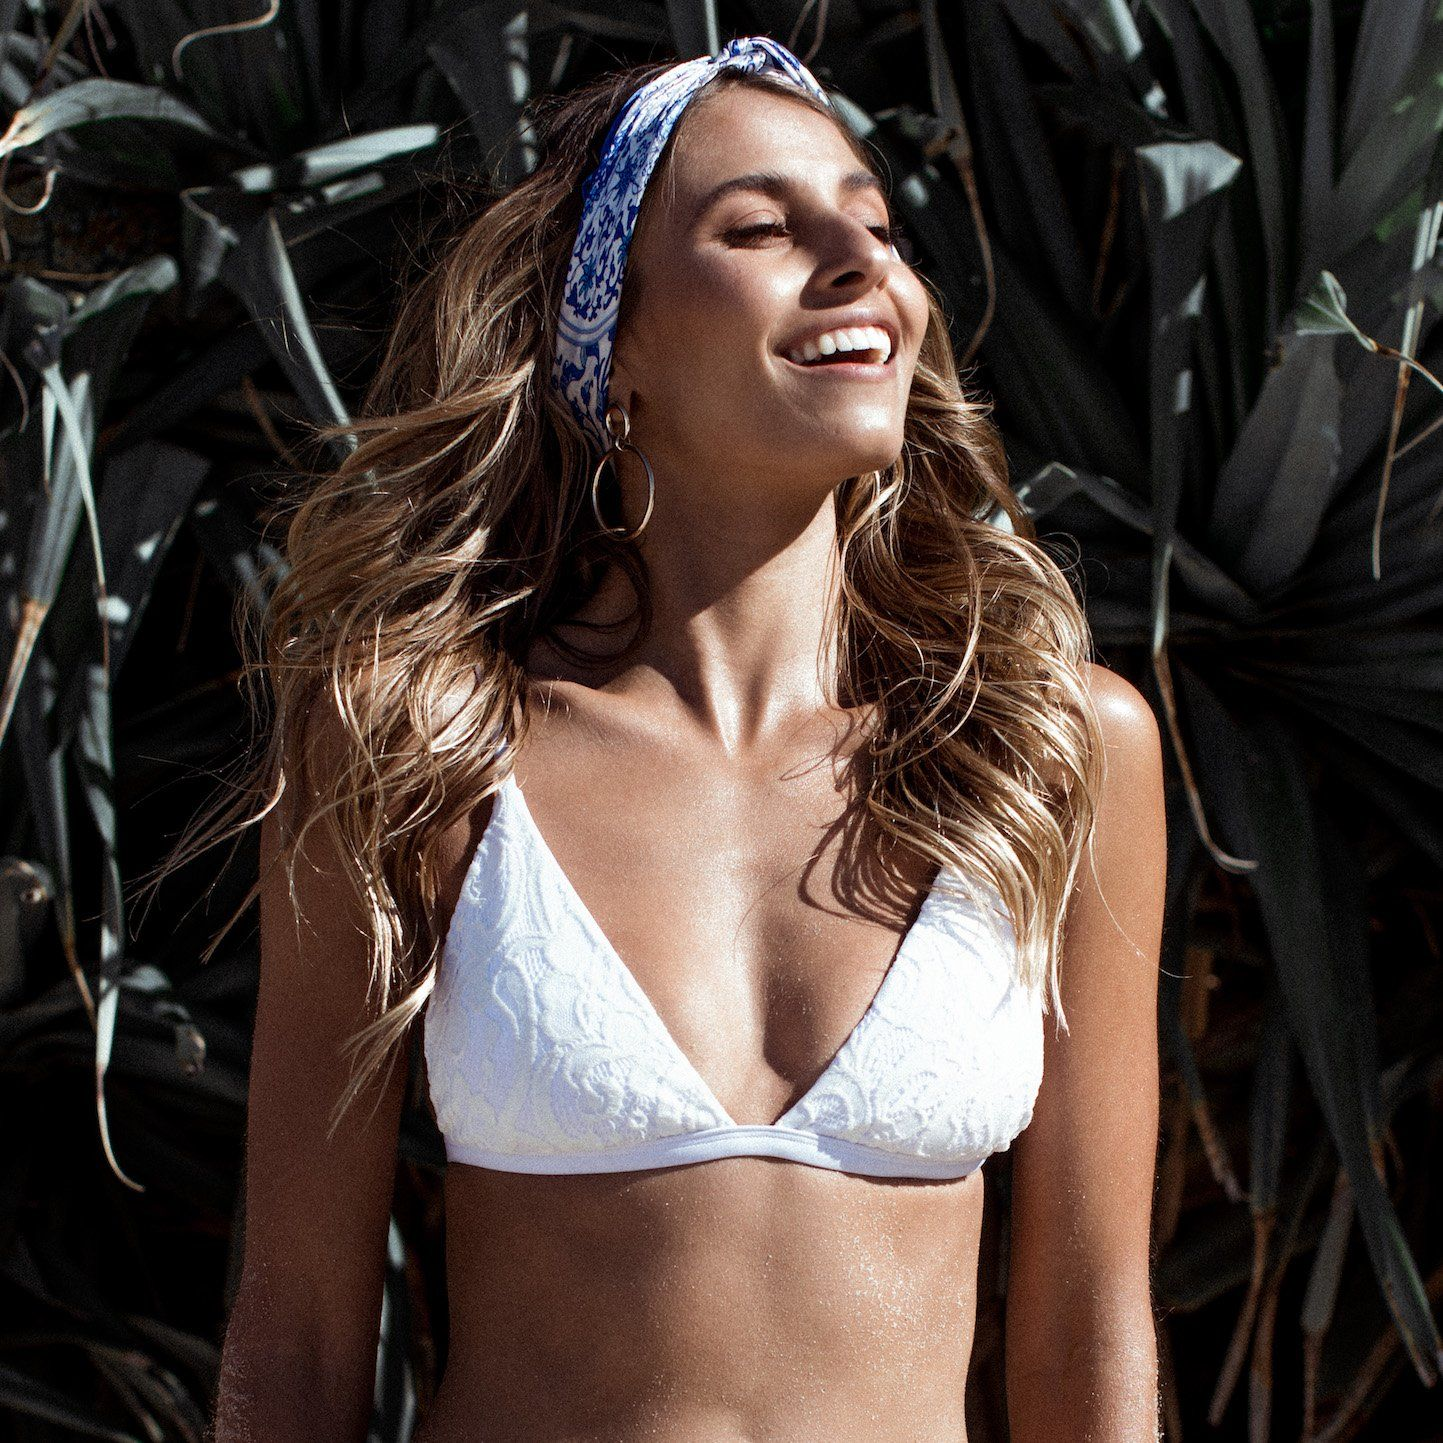 The Tula lace bikini top is a summer staple. Triangle bikini design features beautiful feminine white lace with adjustable straps and back clasp closure. Check out our website for more! #beachday #eteswimwear #bikini #summer #summerromance